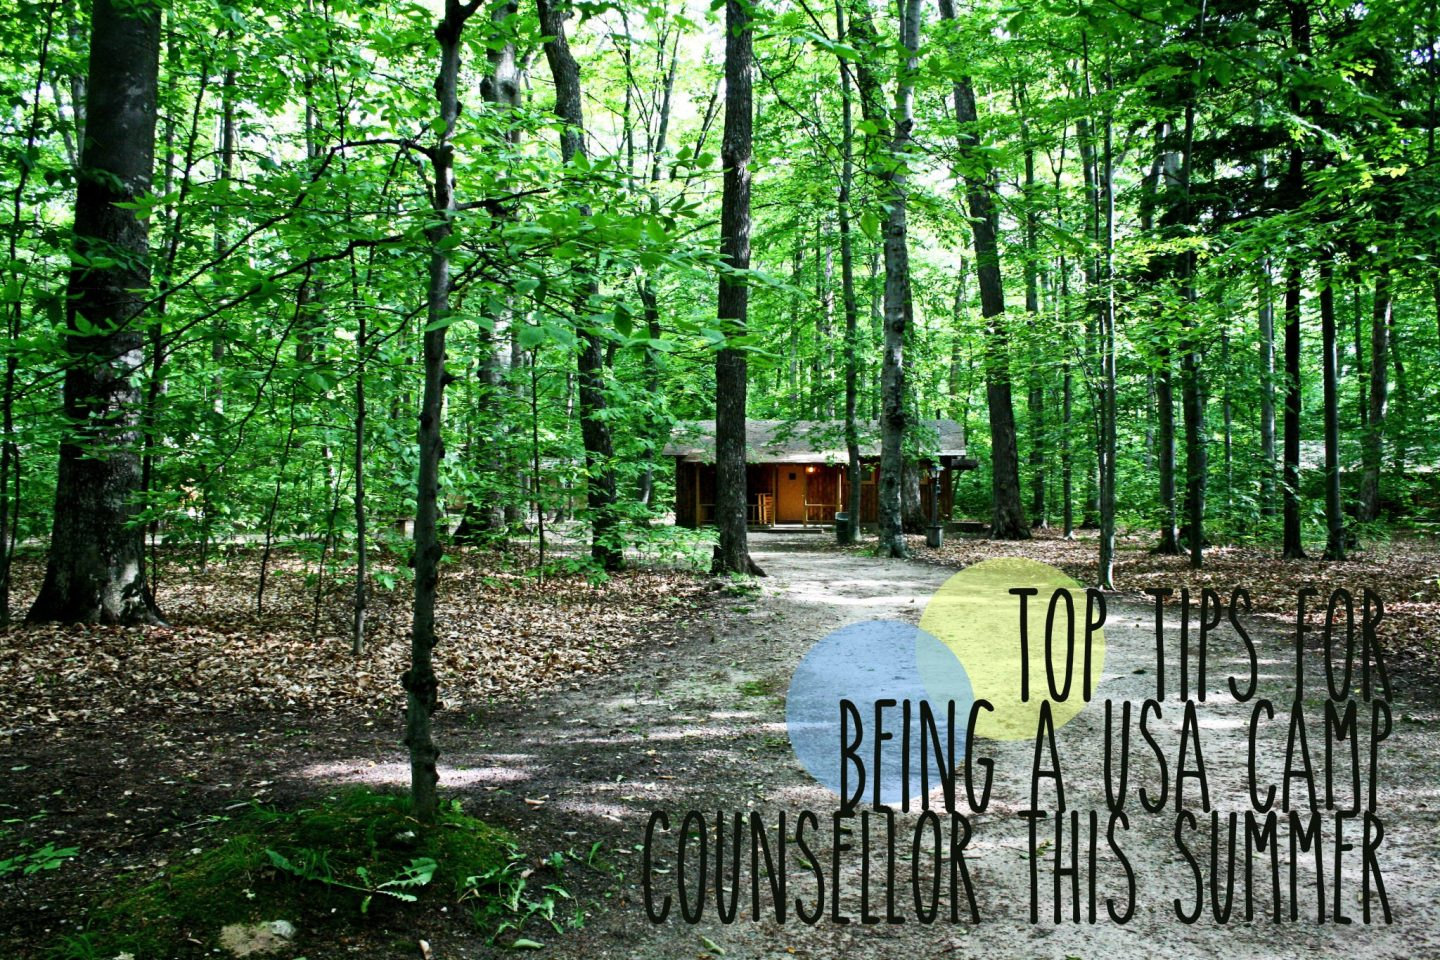 Top Tips for Working at Camp America